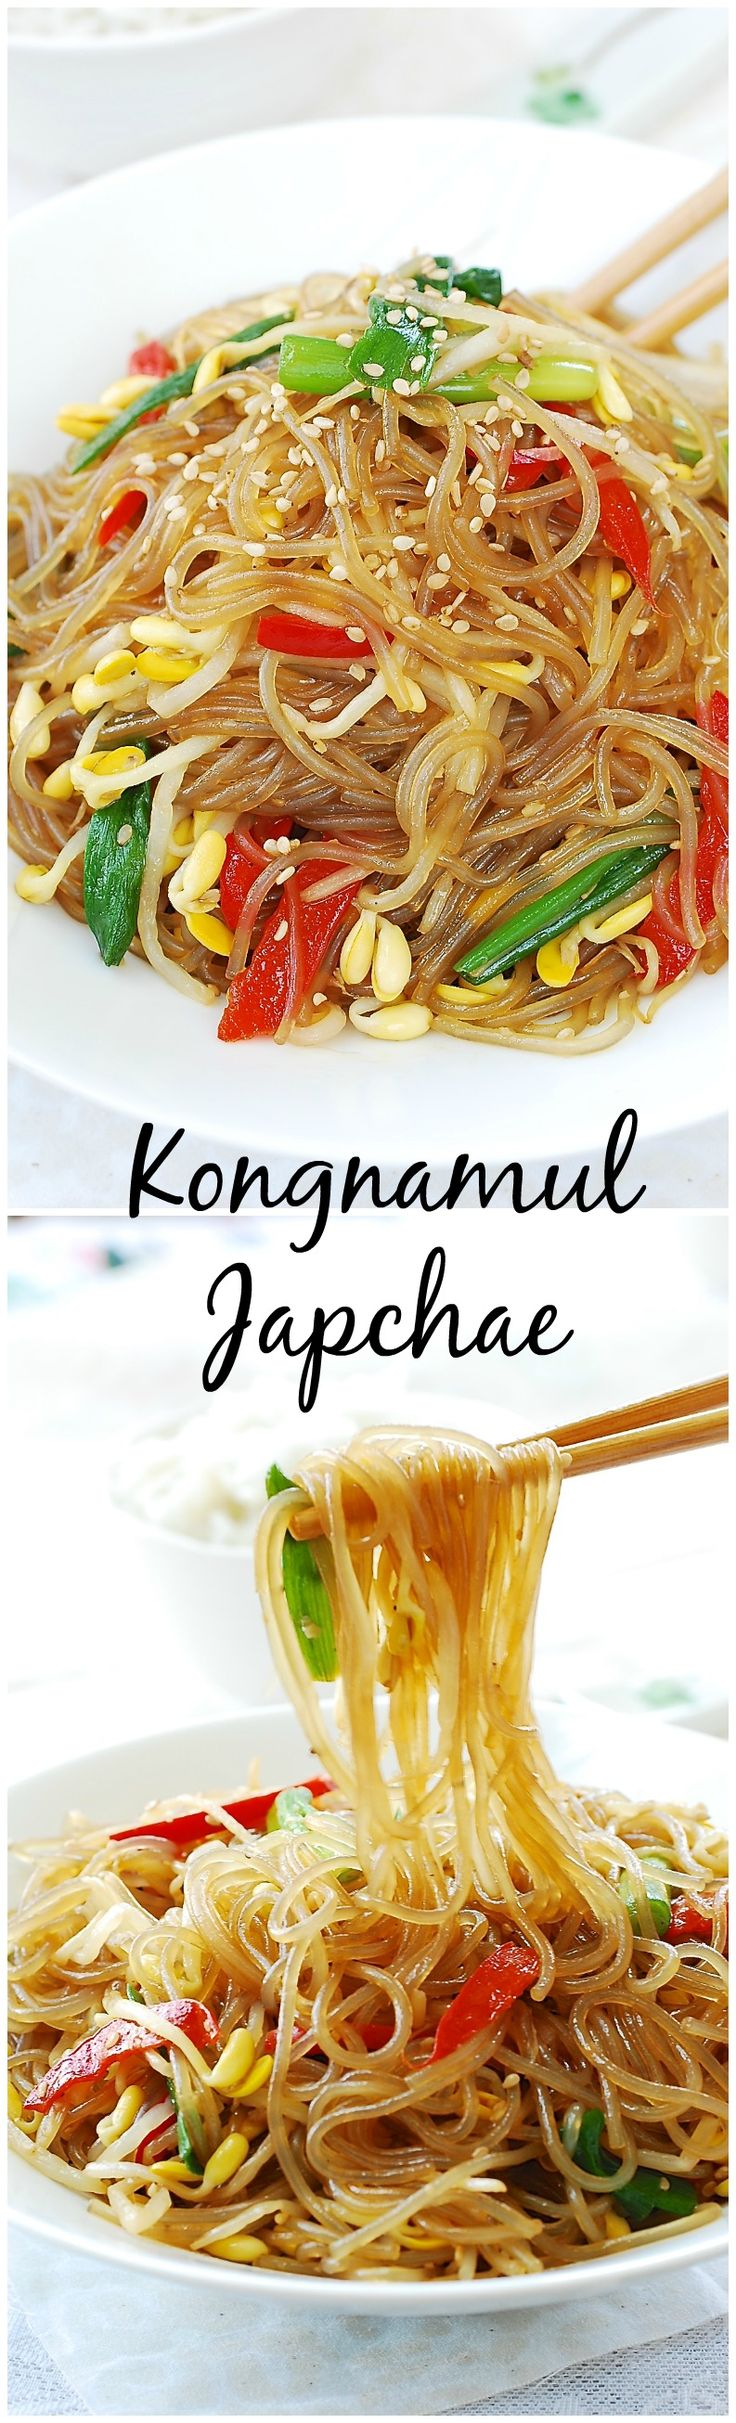 Quick and easy japchae made with soybean sprouts! Japchae is a Korean dish made with sweet potato starch noodles.